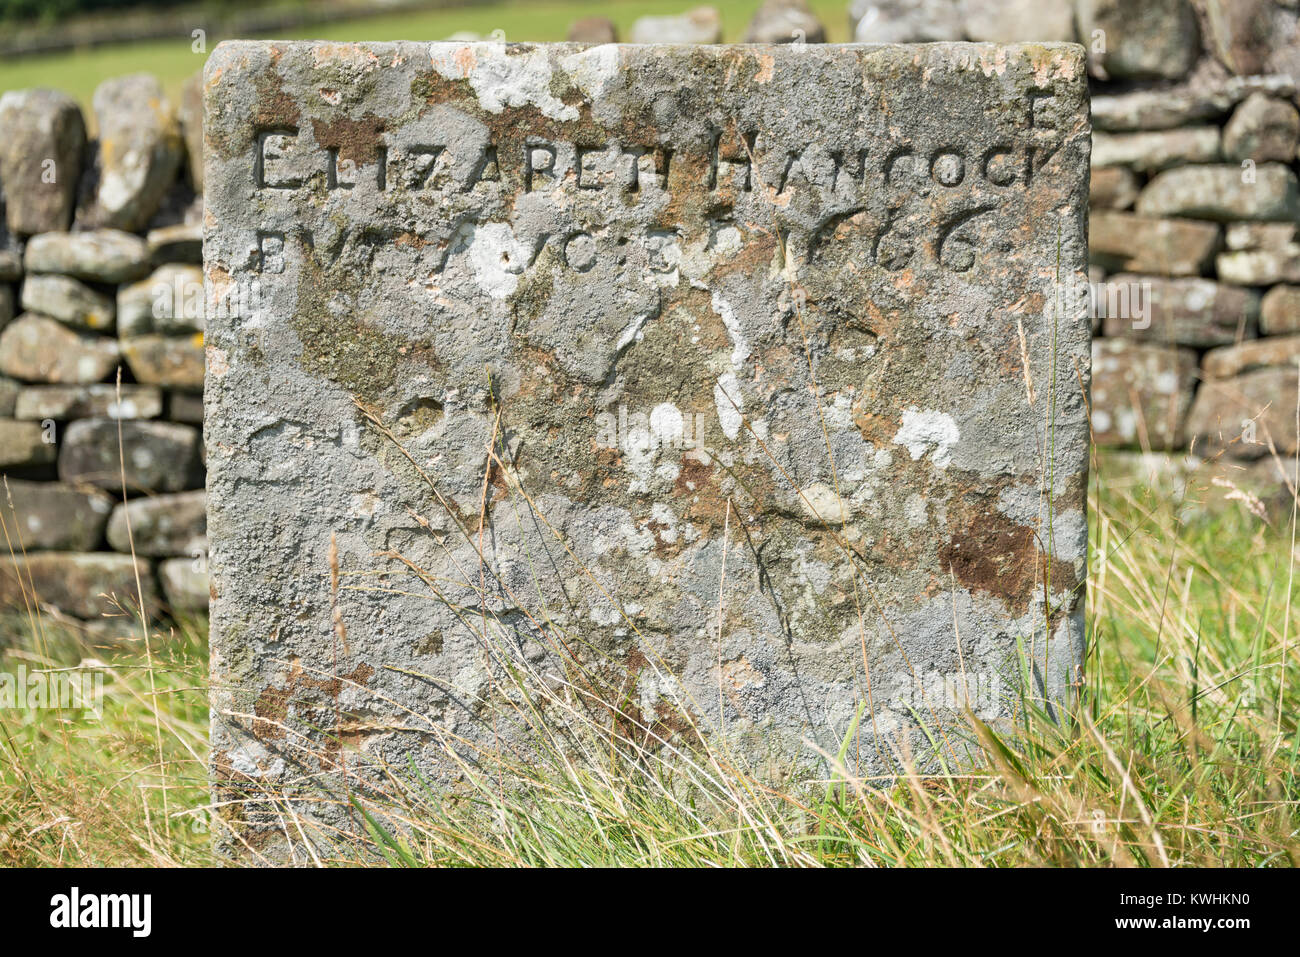 The Hancock family grave in Eyam, Derbyshire - Stock Image